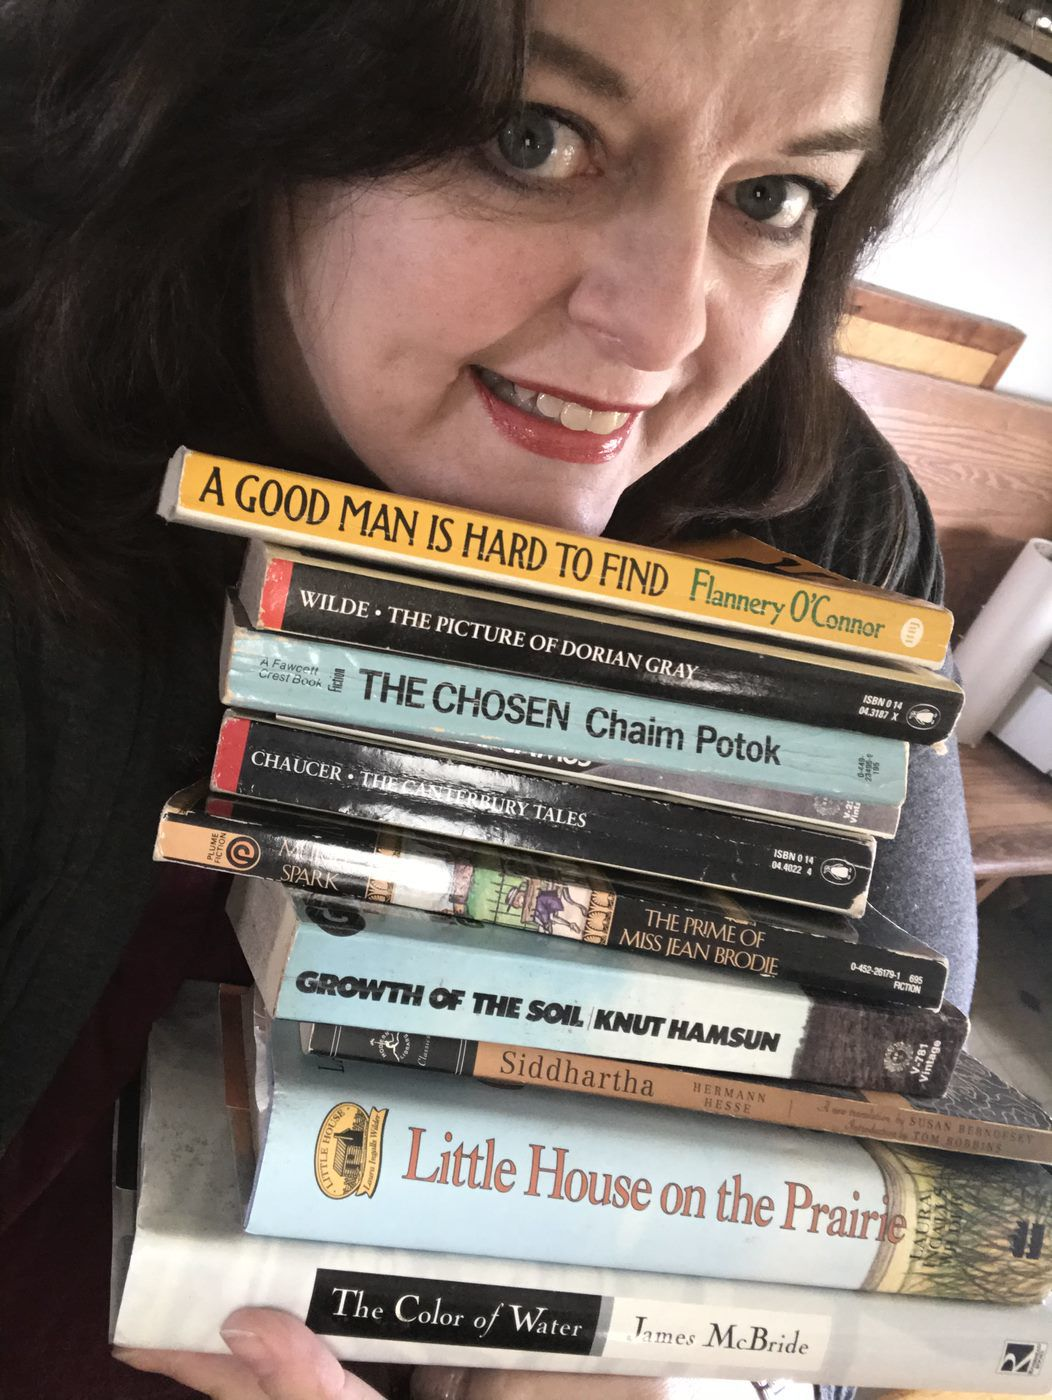 Lorie Palmer has a variety of favorite books